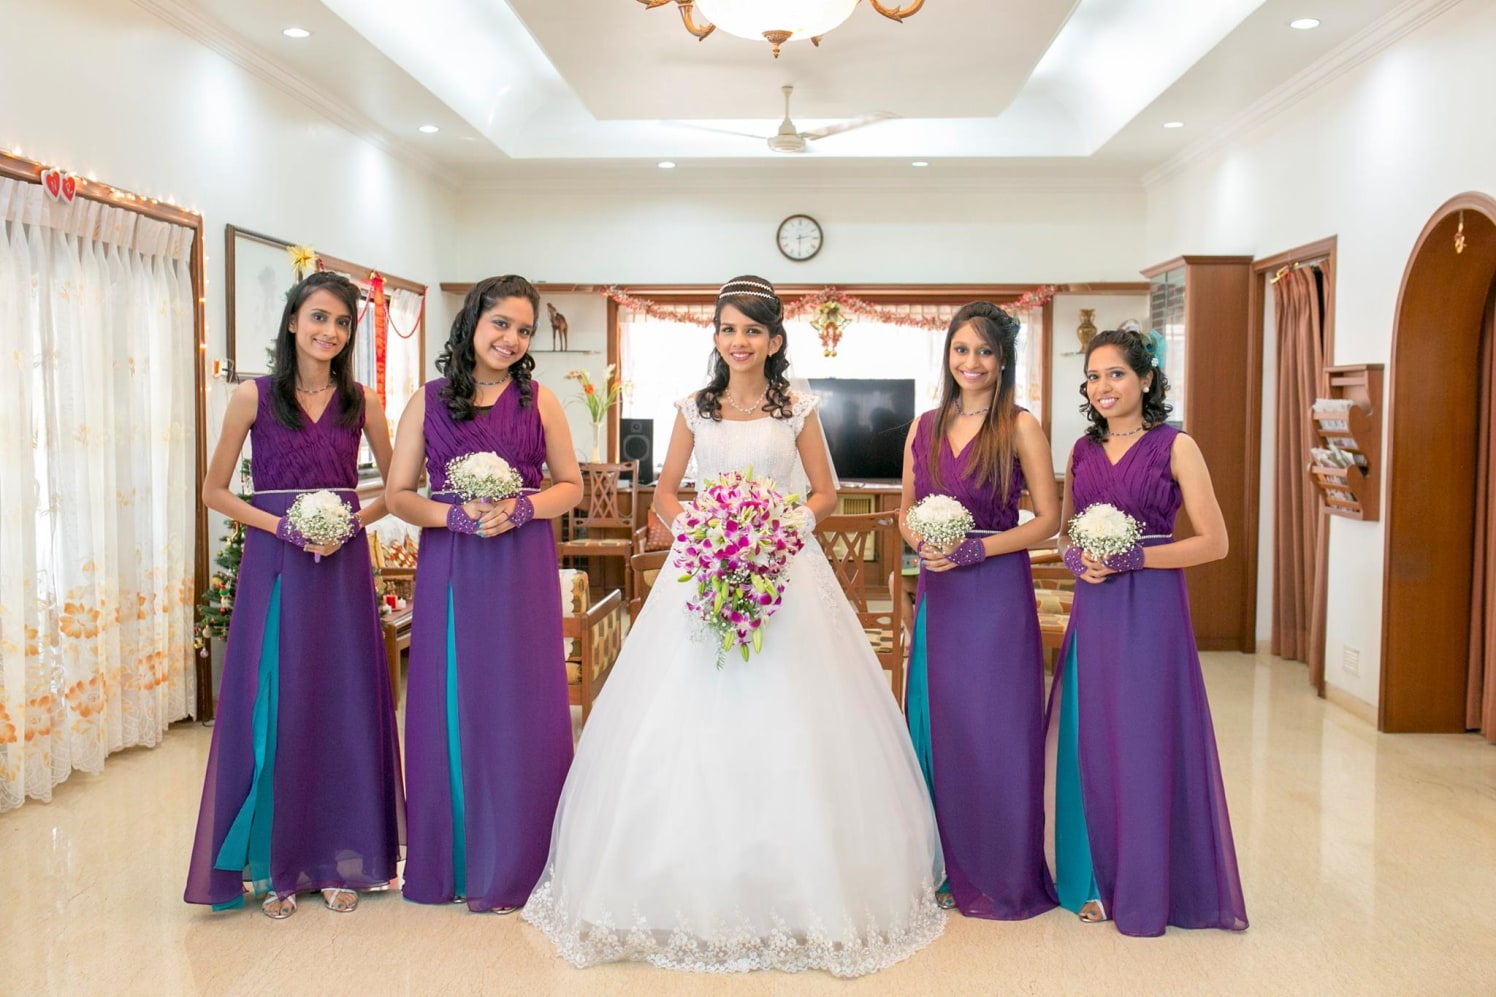 Traditional Shot Of Bride With Bridesmaids Glinting Brilliance by Terence Savio Pimenta Wedding-photography | Weddings Photos & Ideas